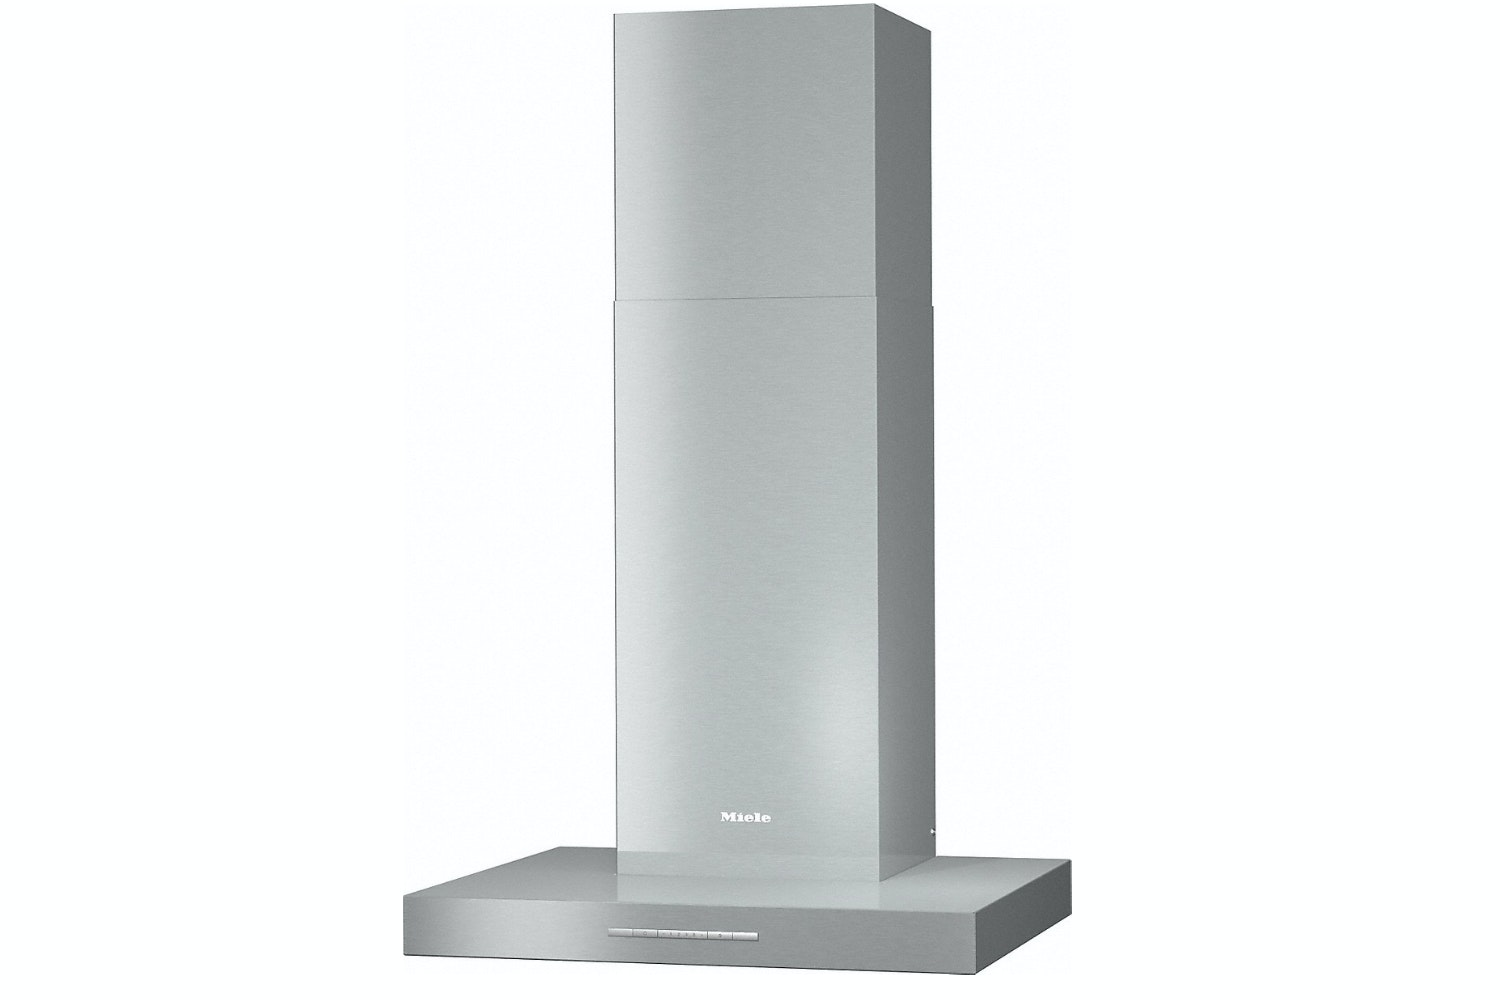 Miele Pur 68 Cooker Hood   Stainless Steel